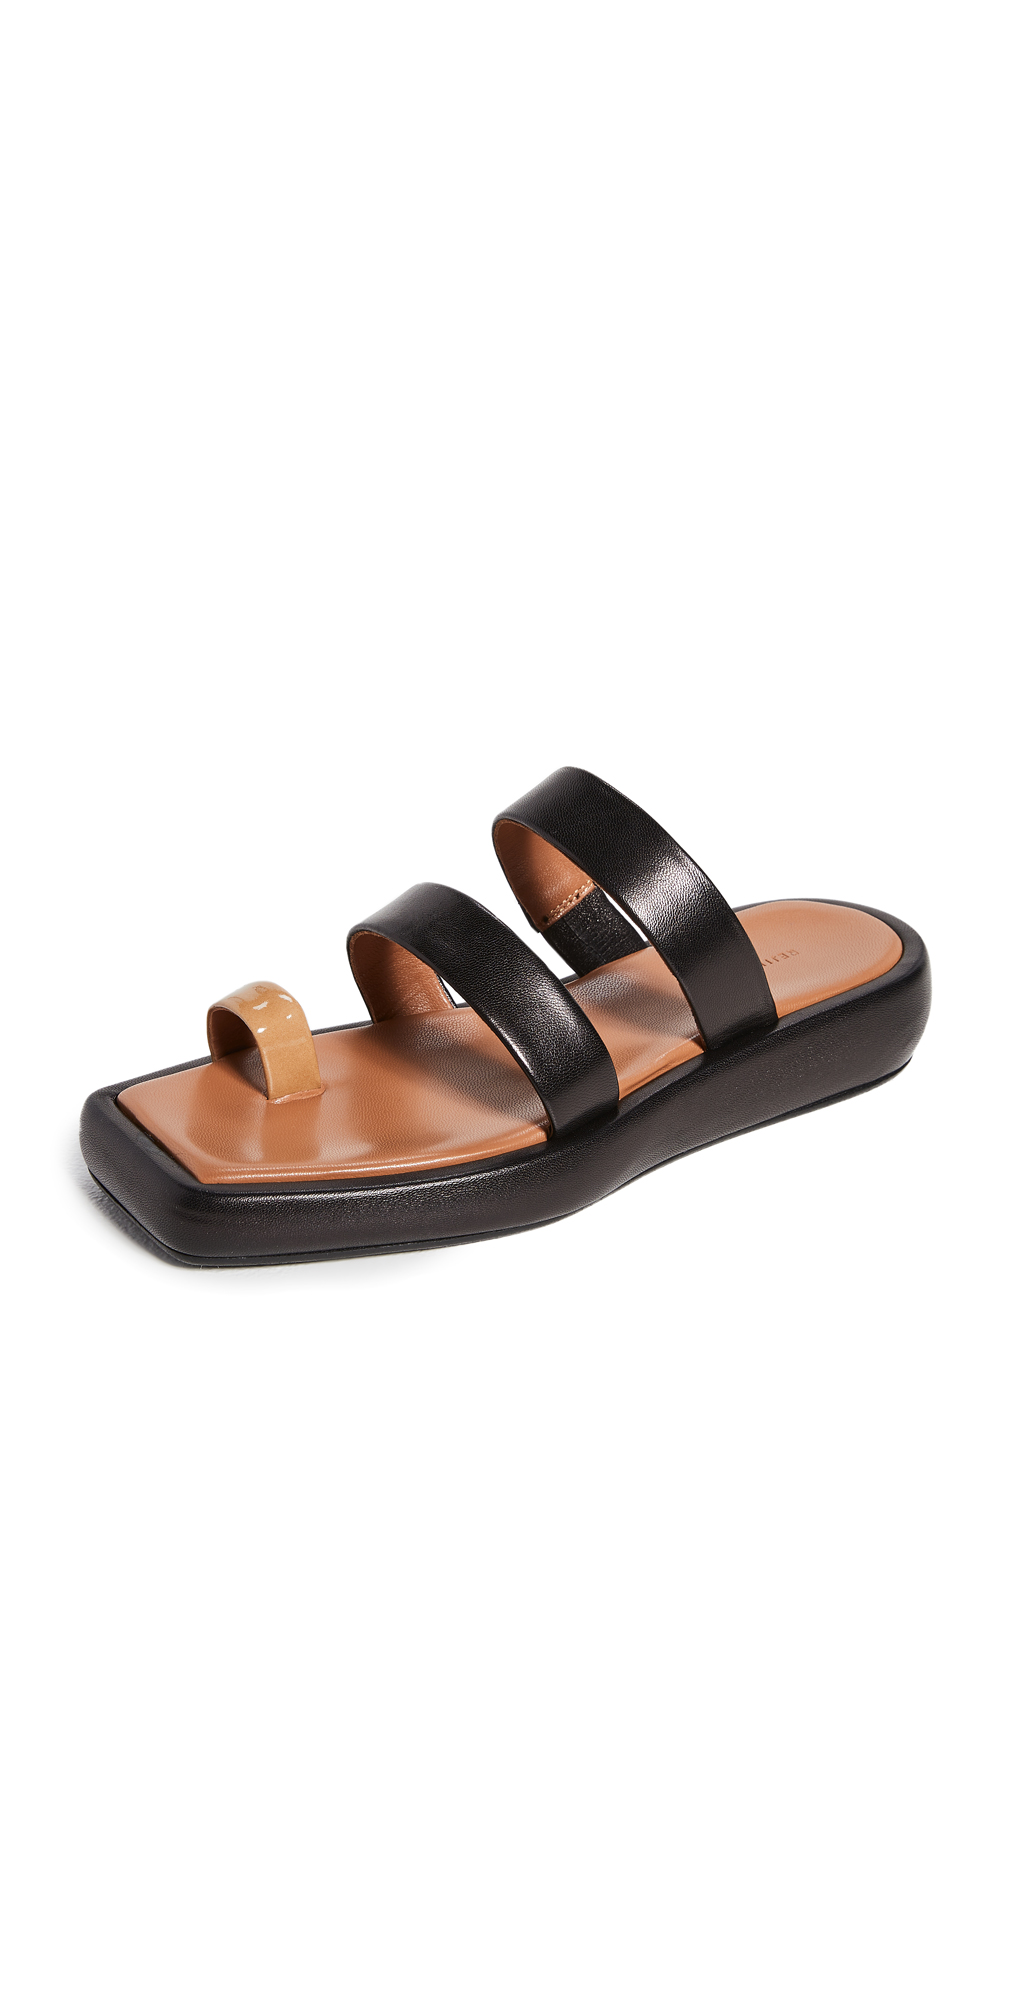 Rejina Pyo Larissa Sandals 30mm